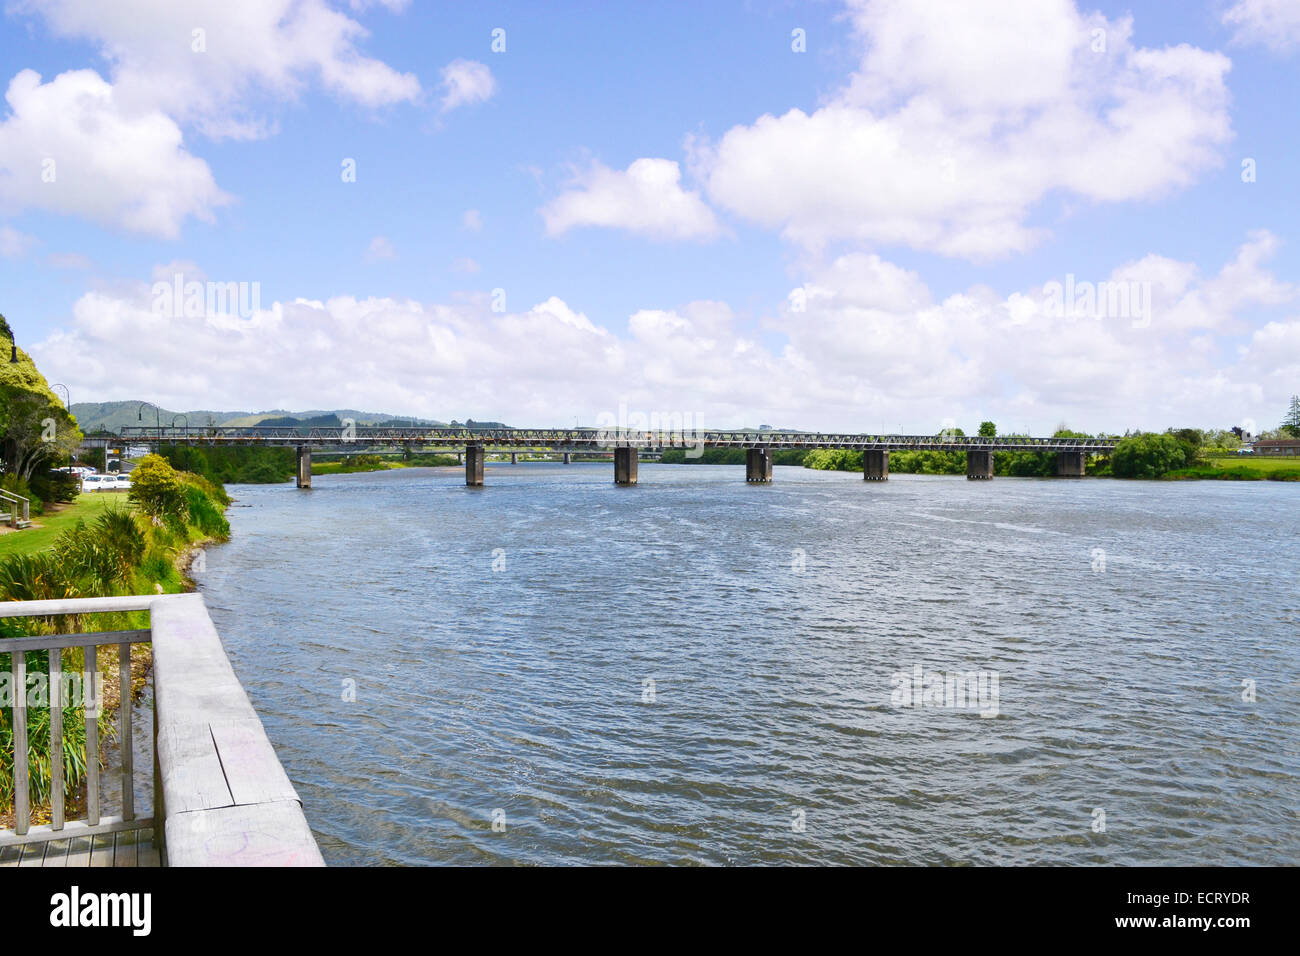 A view of Waikato river in Auckland New Zealand - Stock Image